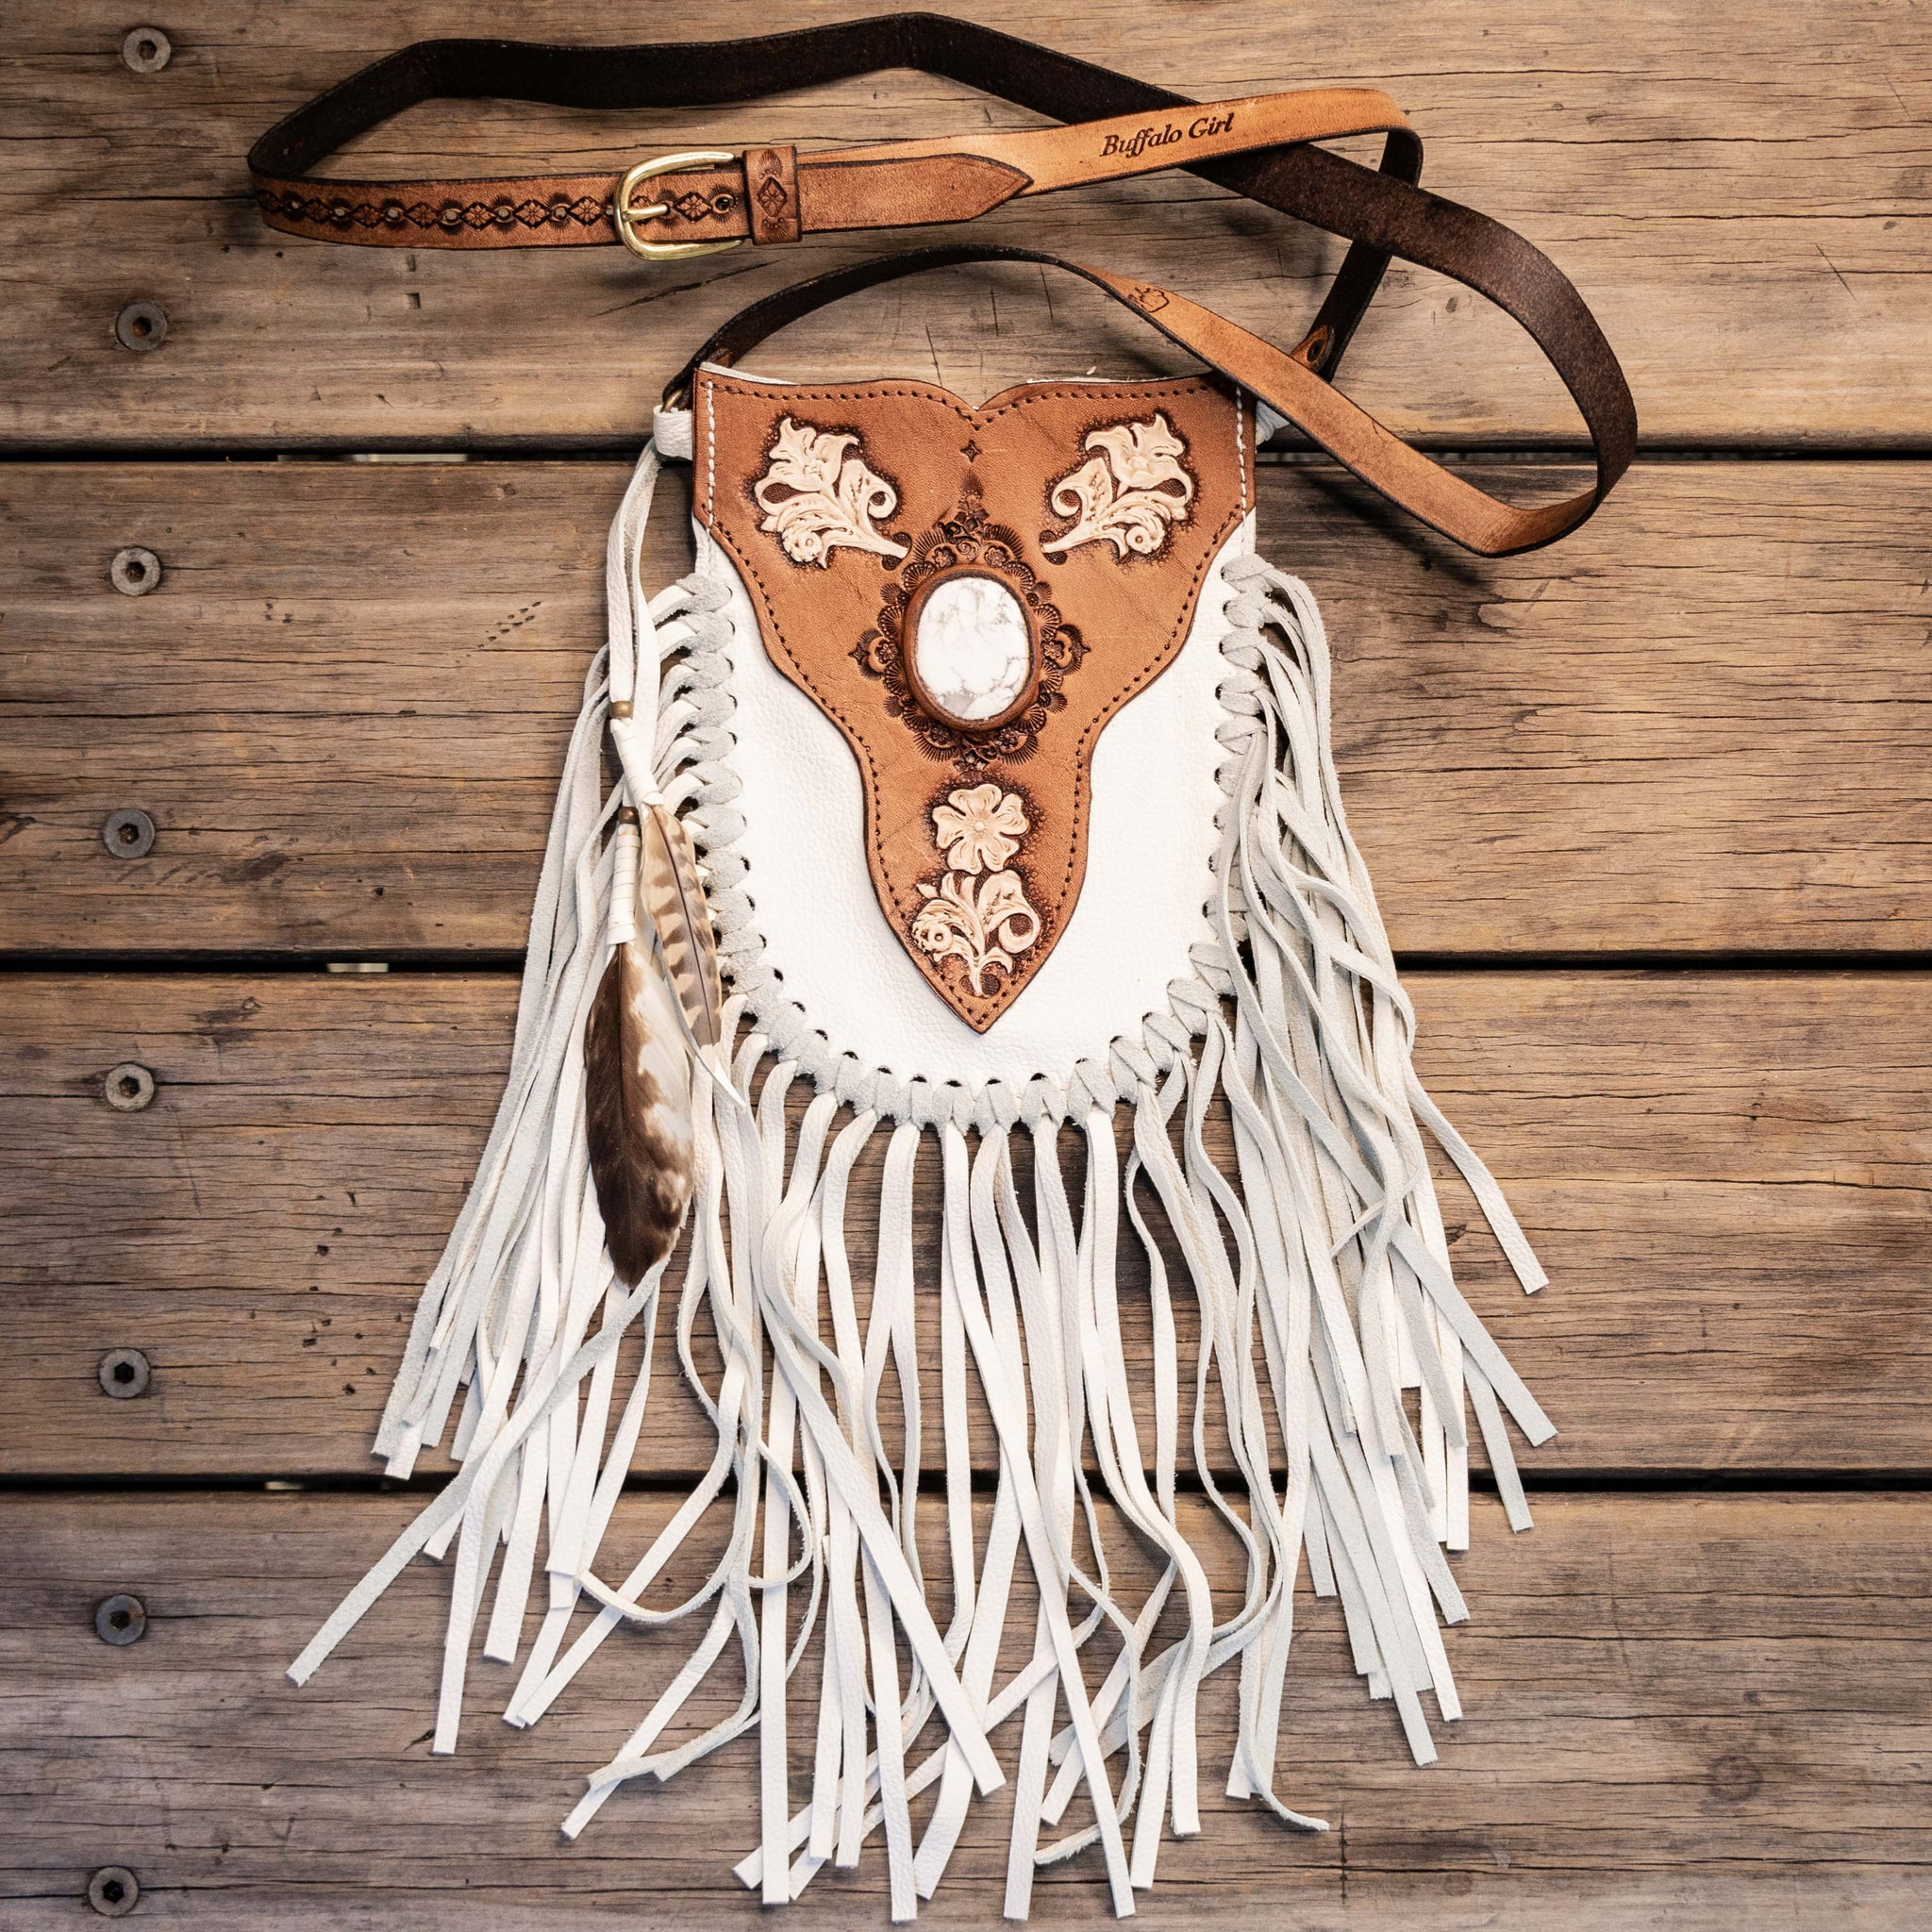 Prairie Phone Pouch in white leather with hand painted flowers and a Howlite stone inlay - $480